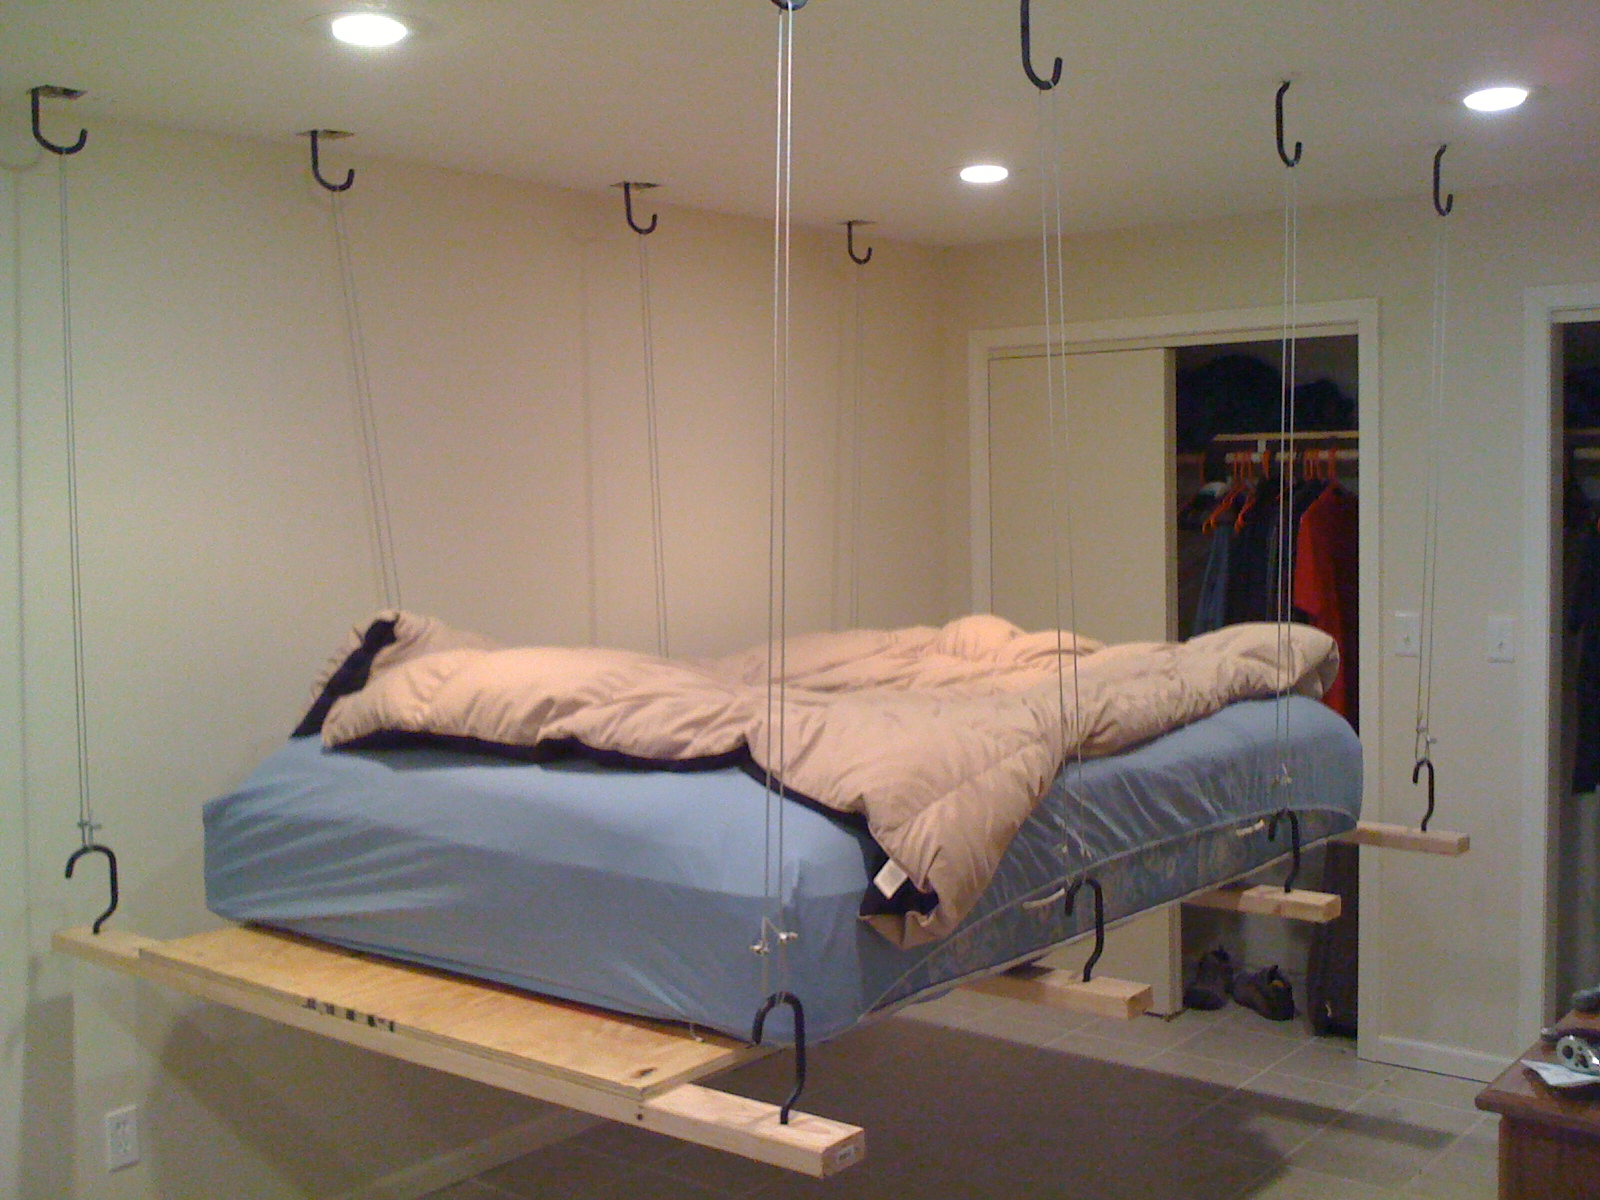 Updated Hang Your Bed From The Heavens All For Around 100 5 Steps With Pictures Instructables